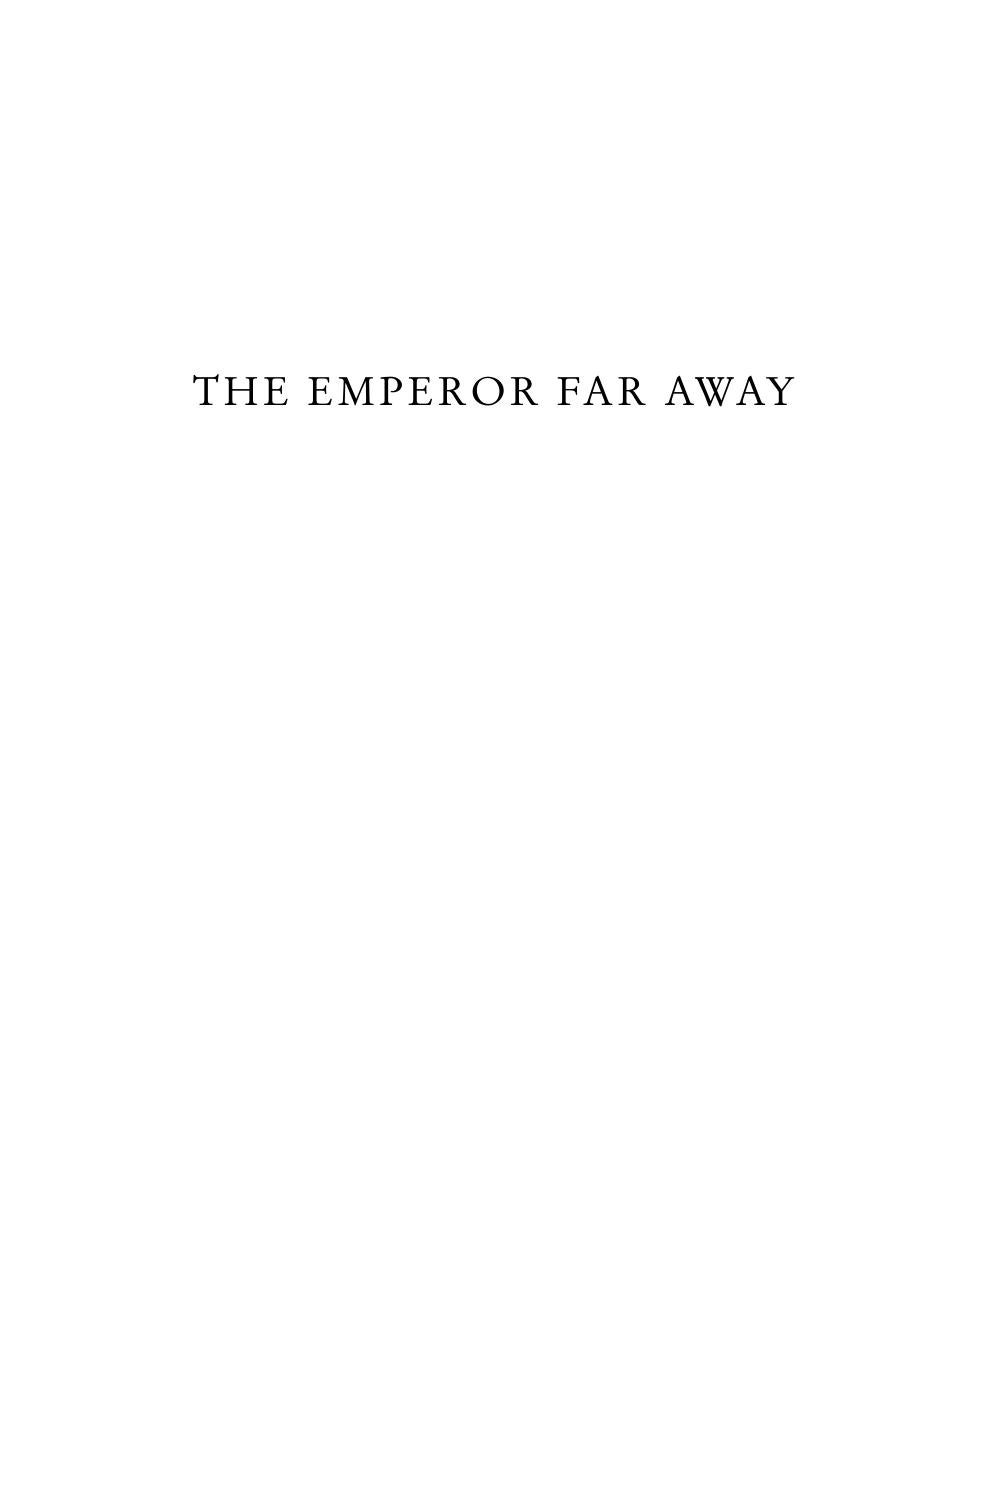 Excerpt from THE EMPEROR FAR AWAY by David Eimer by Bloomsbury Publishing -  issuu